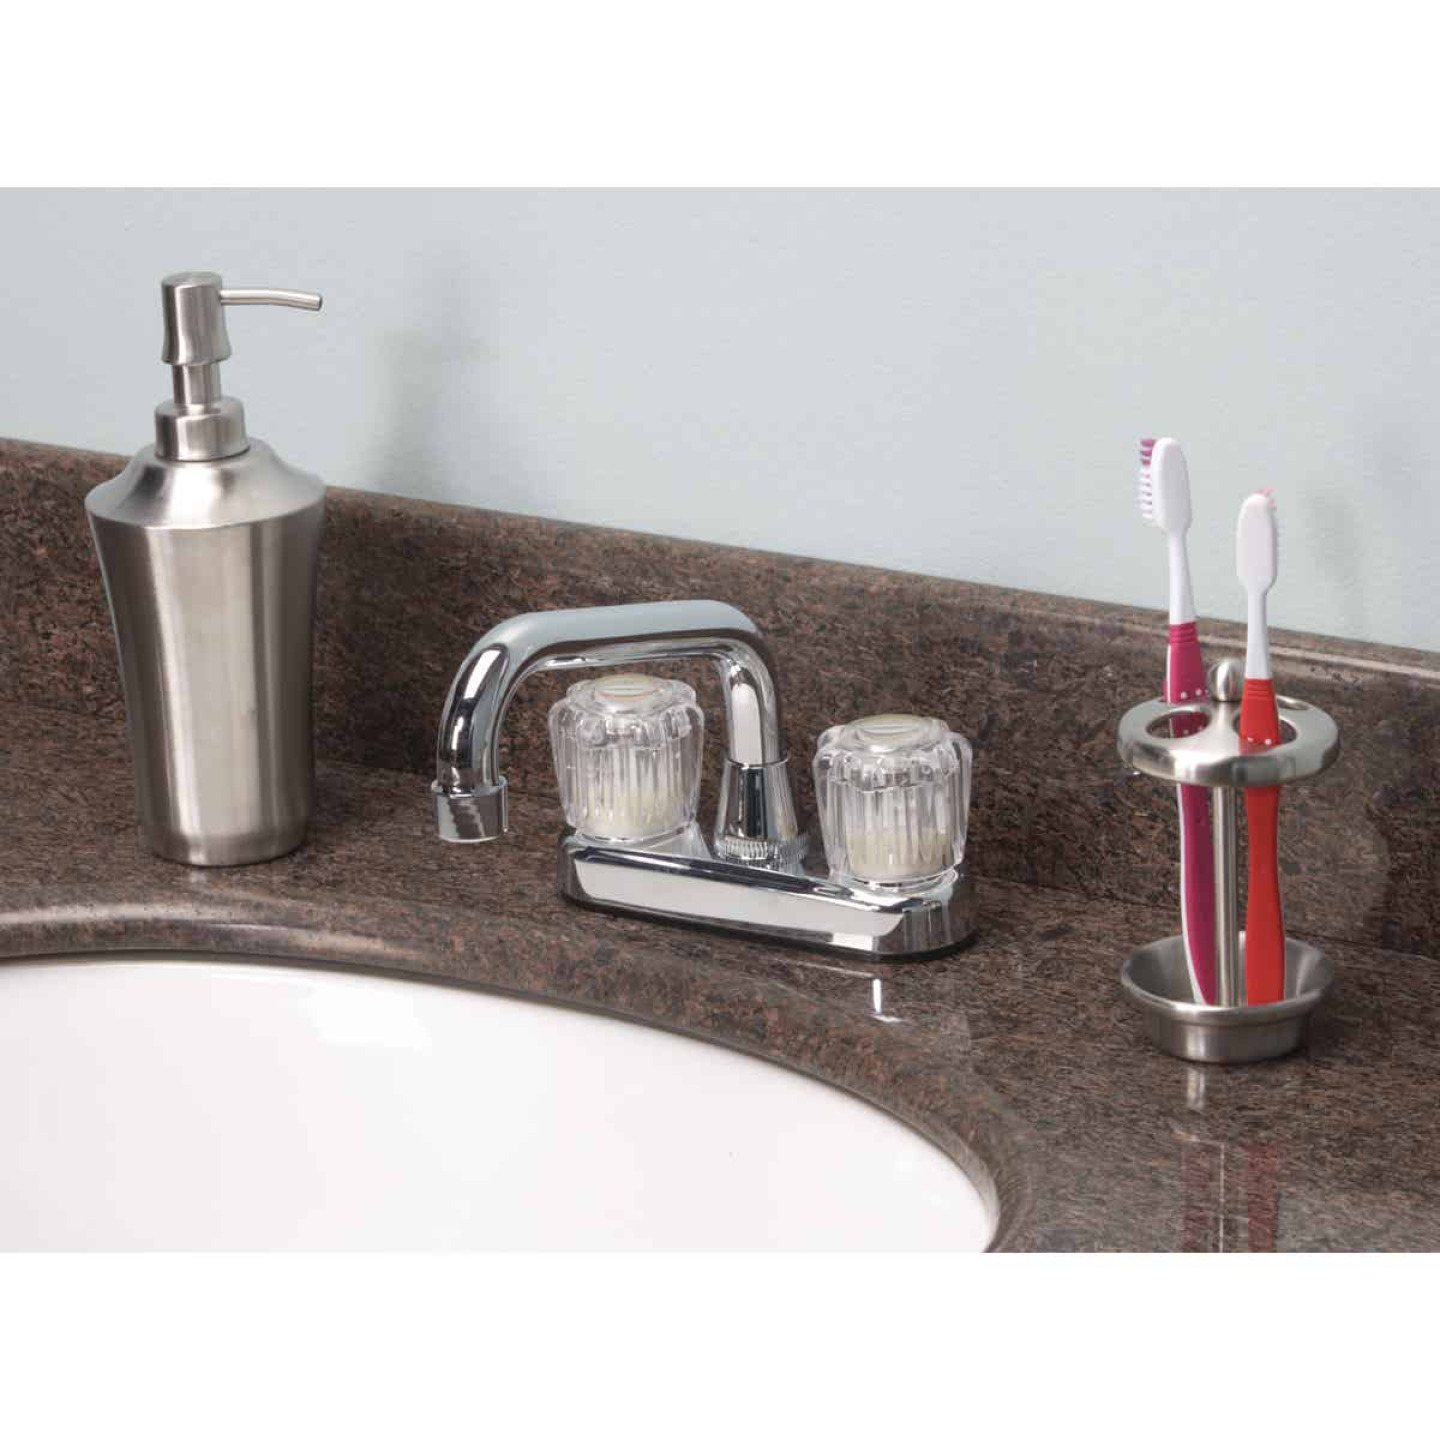 Home Impressions Chrome 4 In. Center 2-Handle Laundry Faucet Image 2